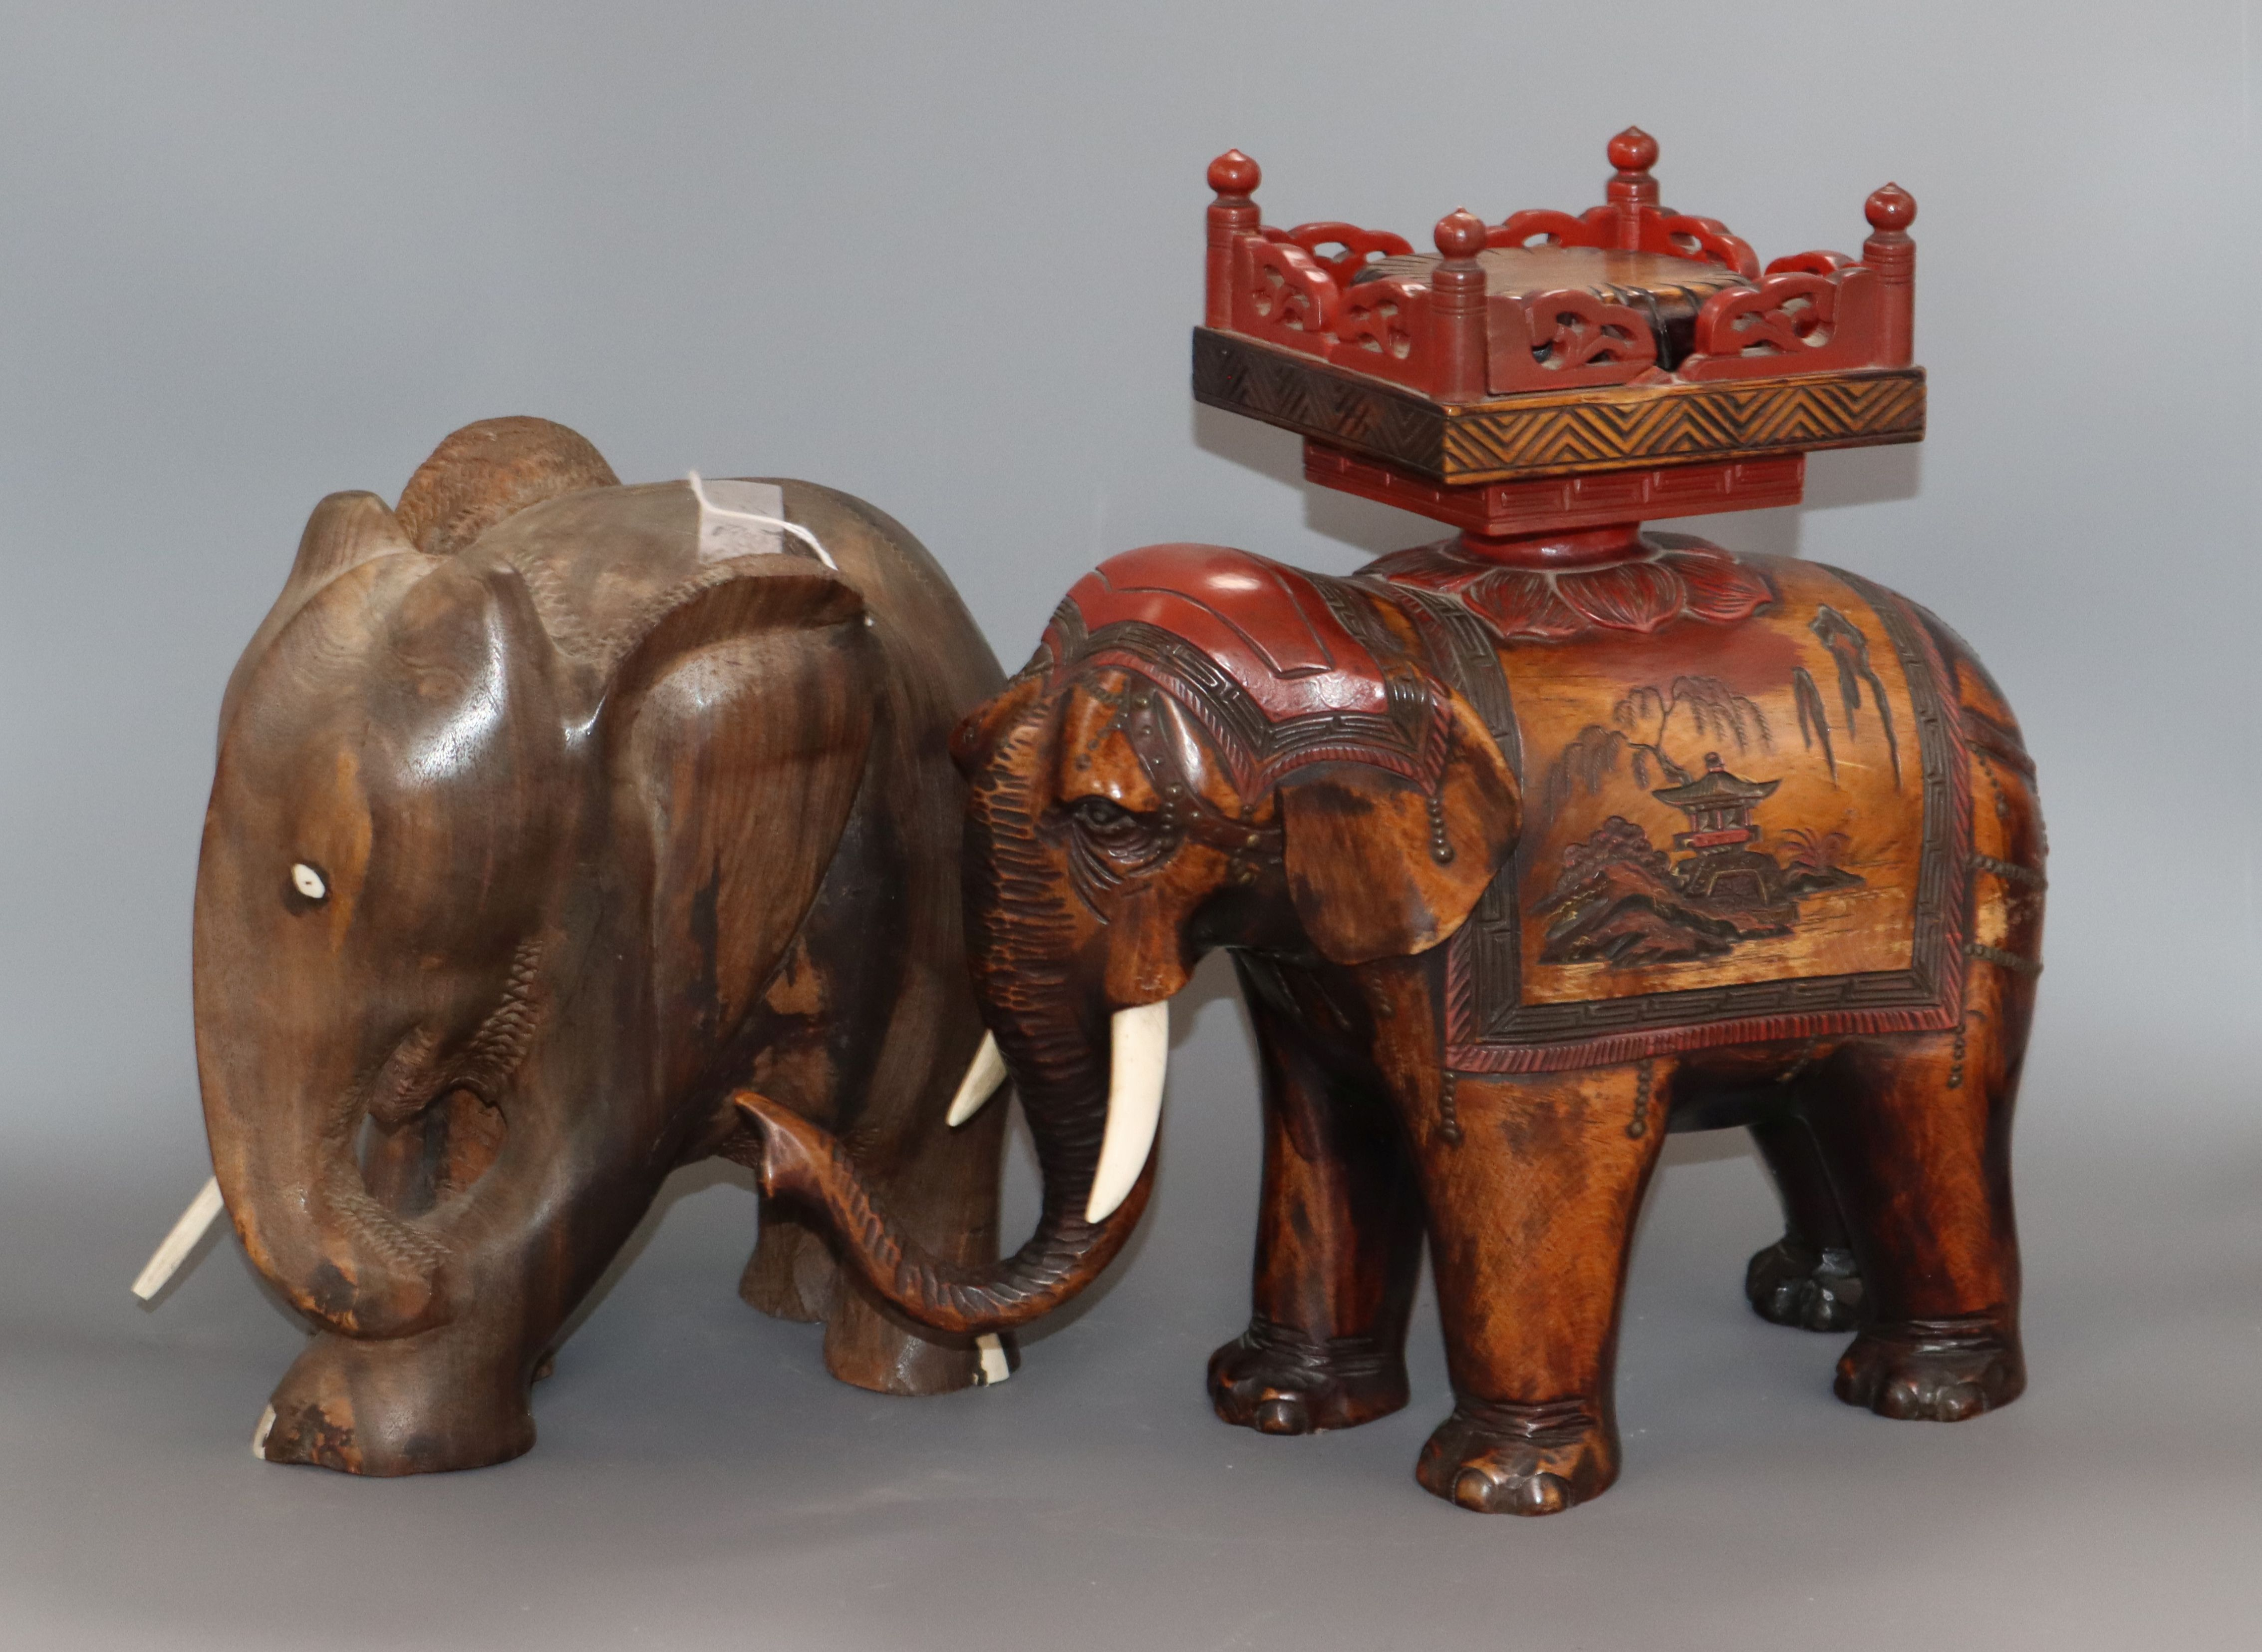 Lot 134 - A Japanese lacquer elephant and a wooden elephant tallest 30cm